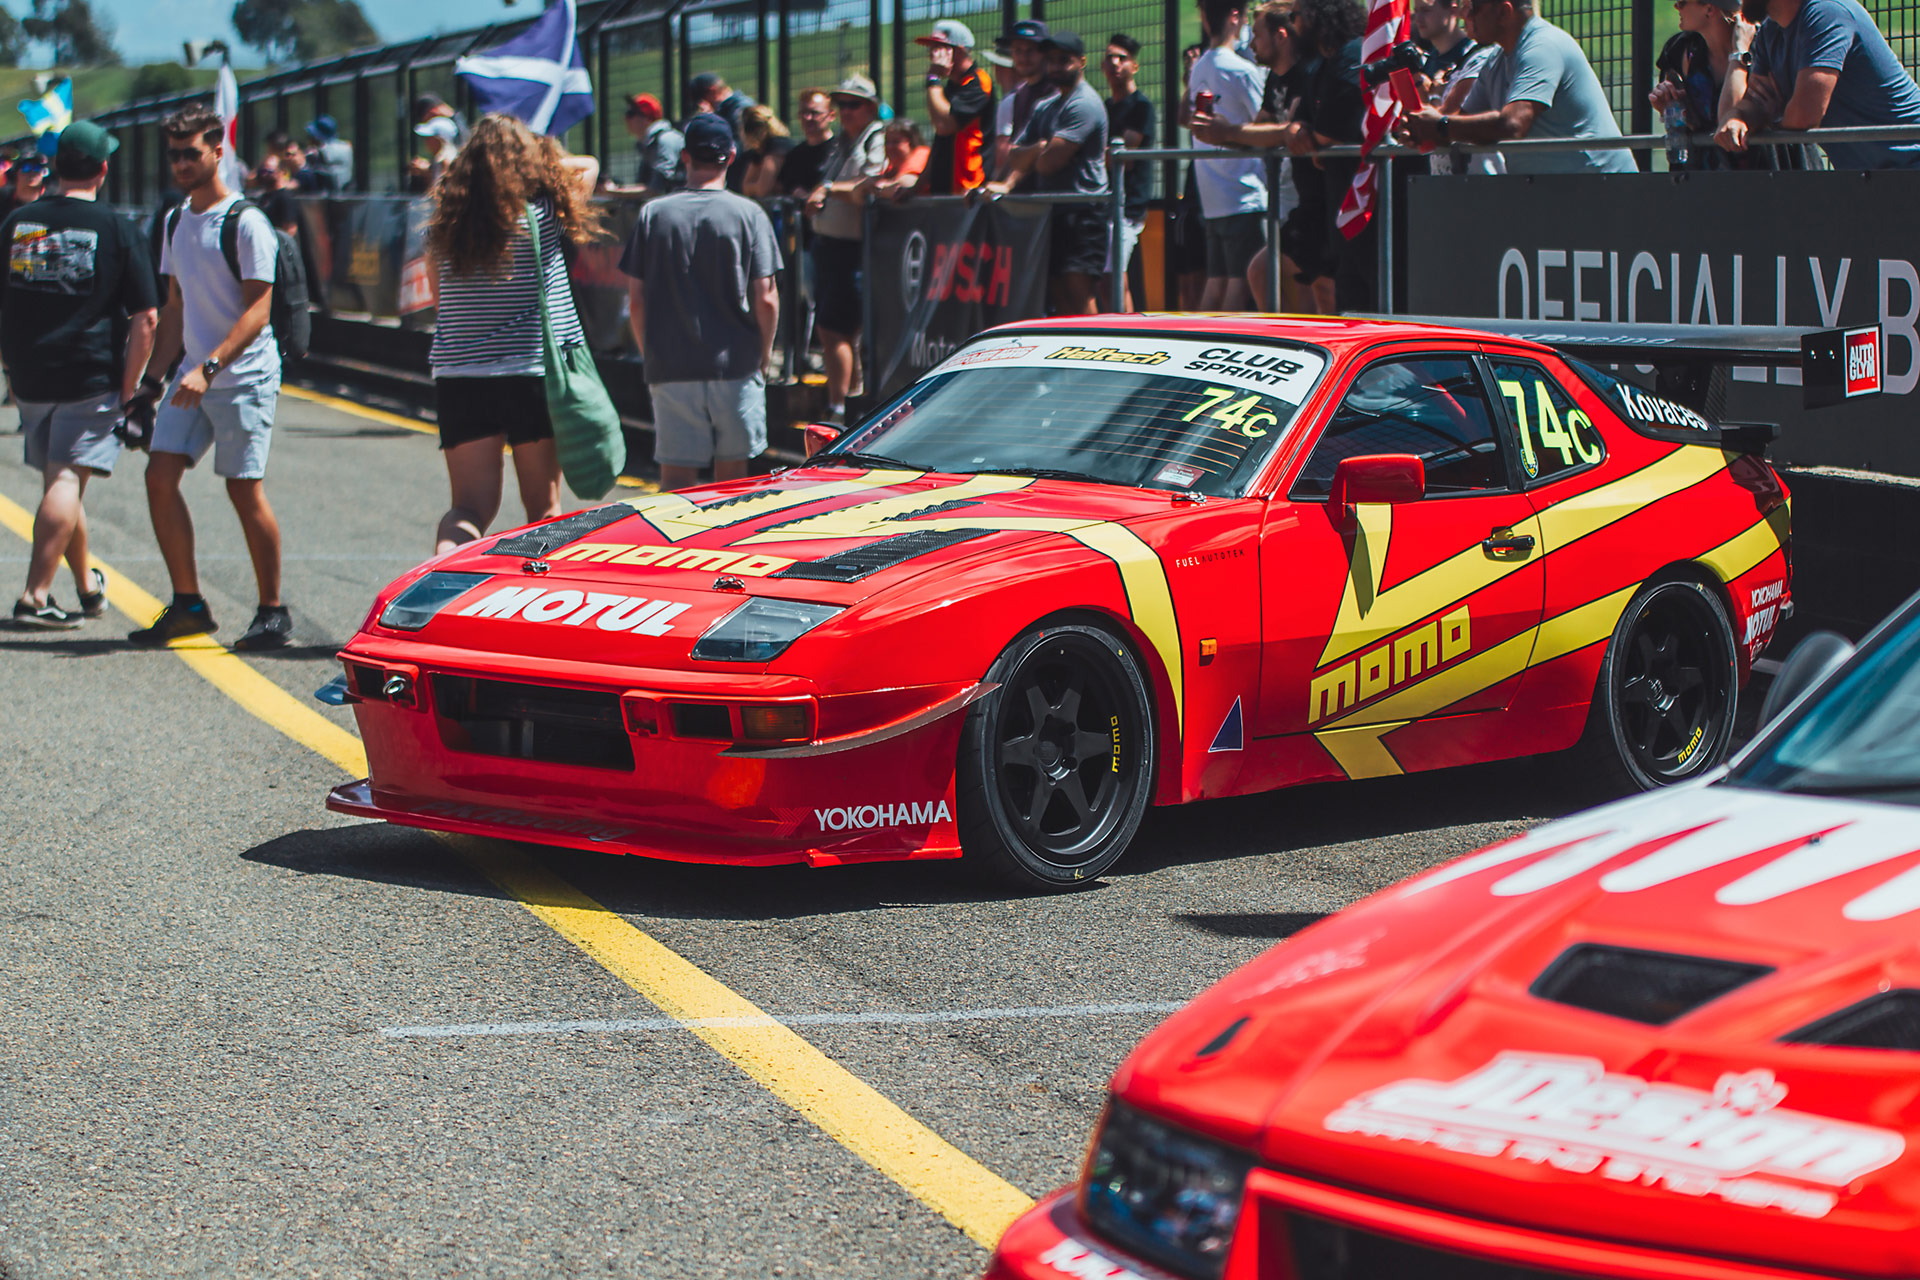 MOMO Livery Porsche 944 Race Car From PKRacing, an Australian Race Team